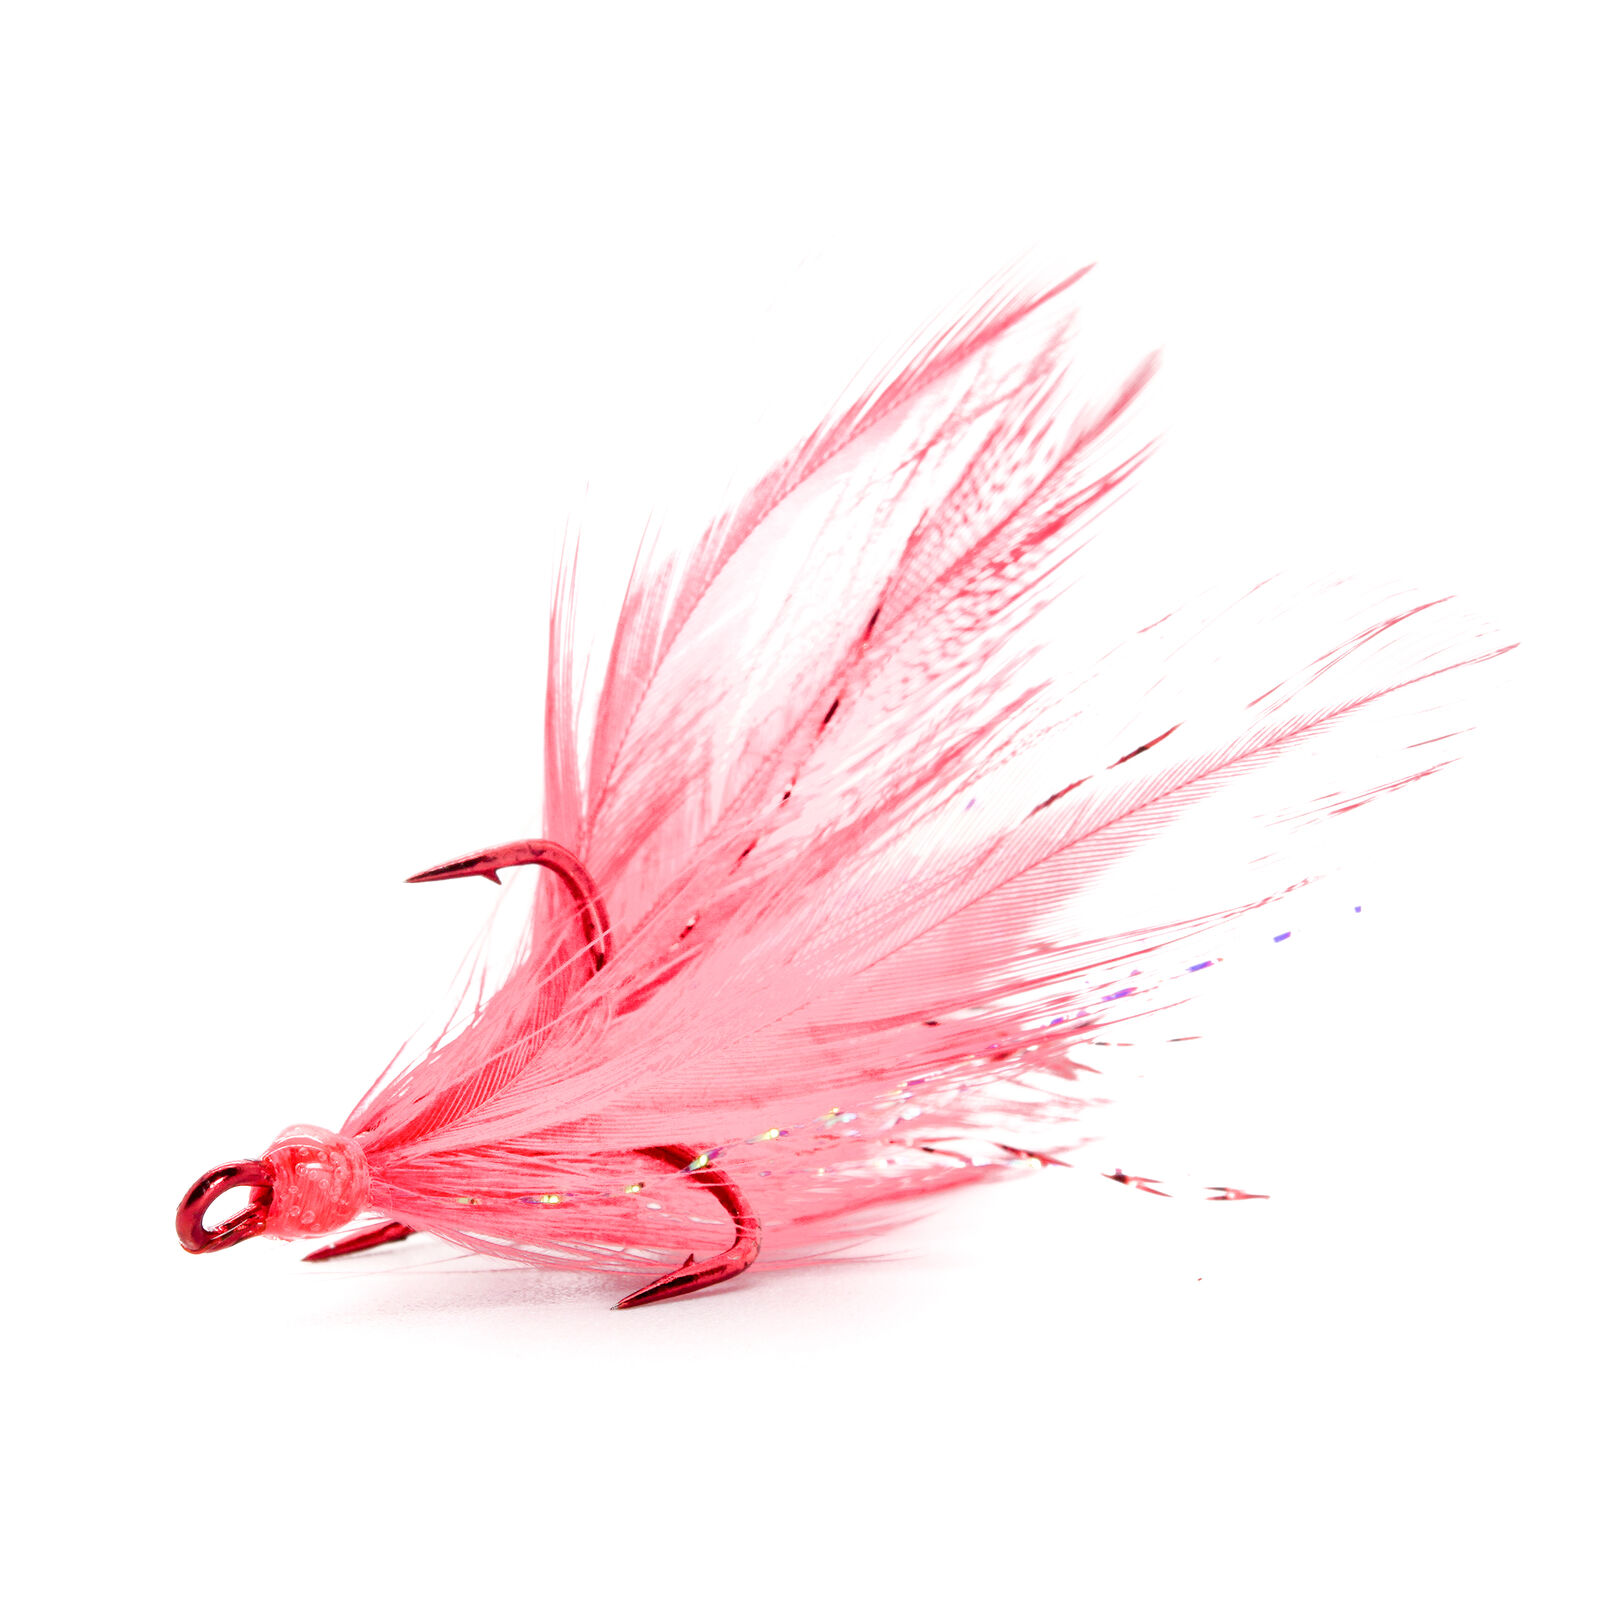 Red Hook//Red and White Feathers Pack of 2 Size 4 Mustad Ultra Point Dressed Round Bend Treble Hook